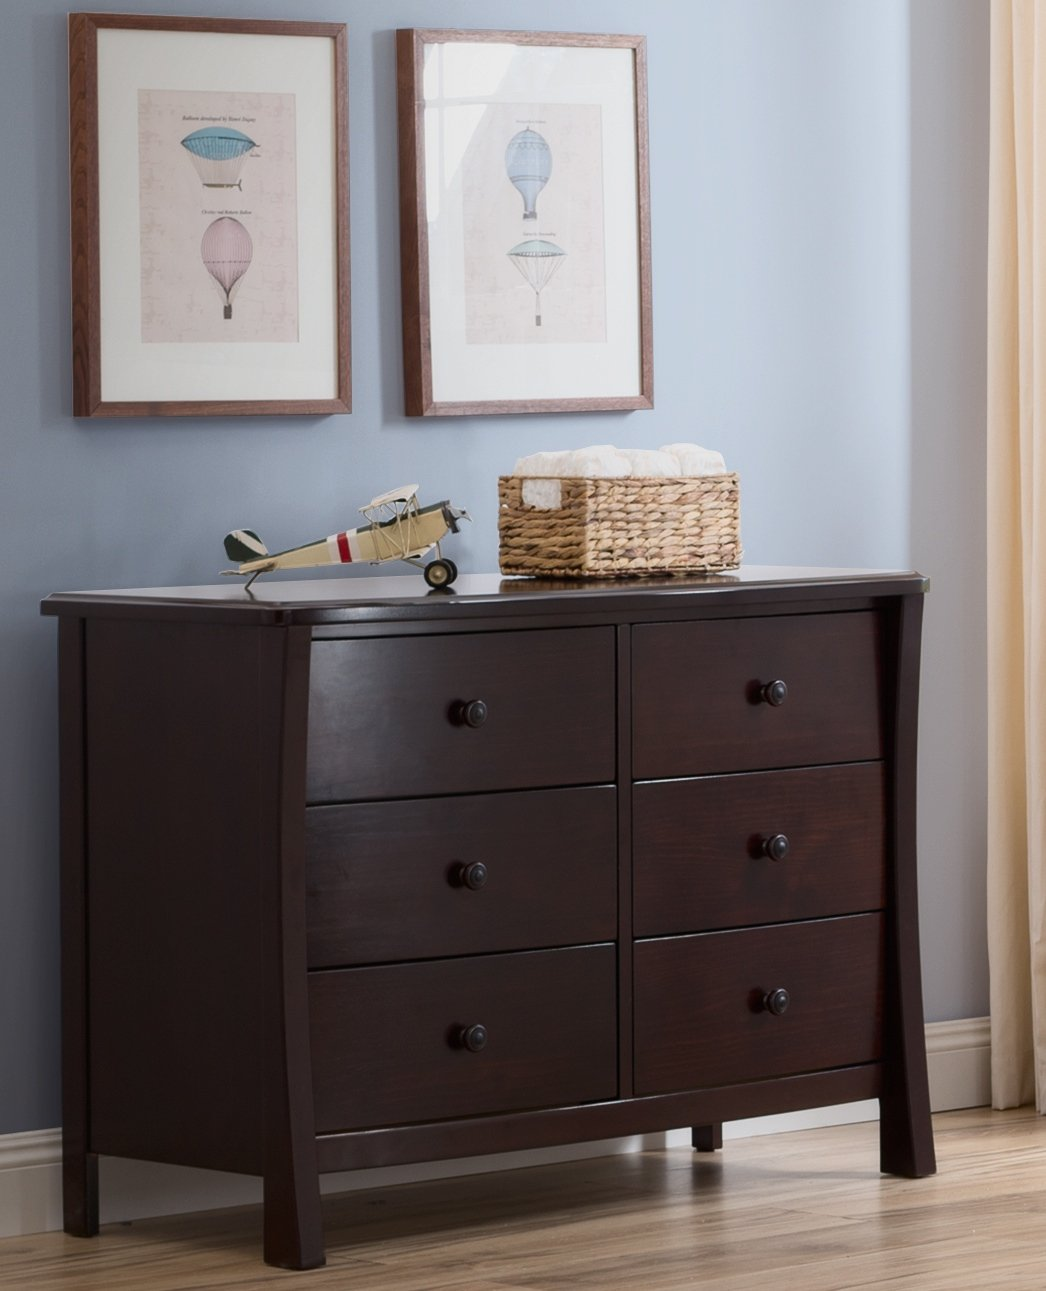 barn dresser au for camp media navy pottery andnightstand kids